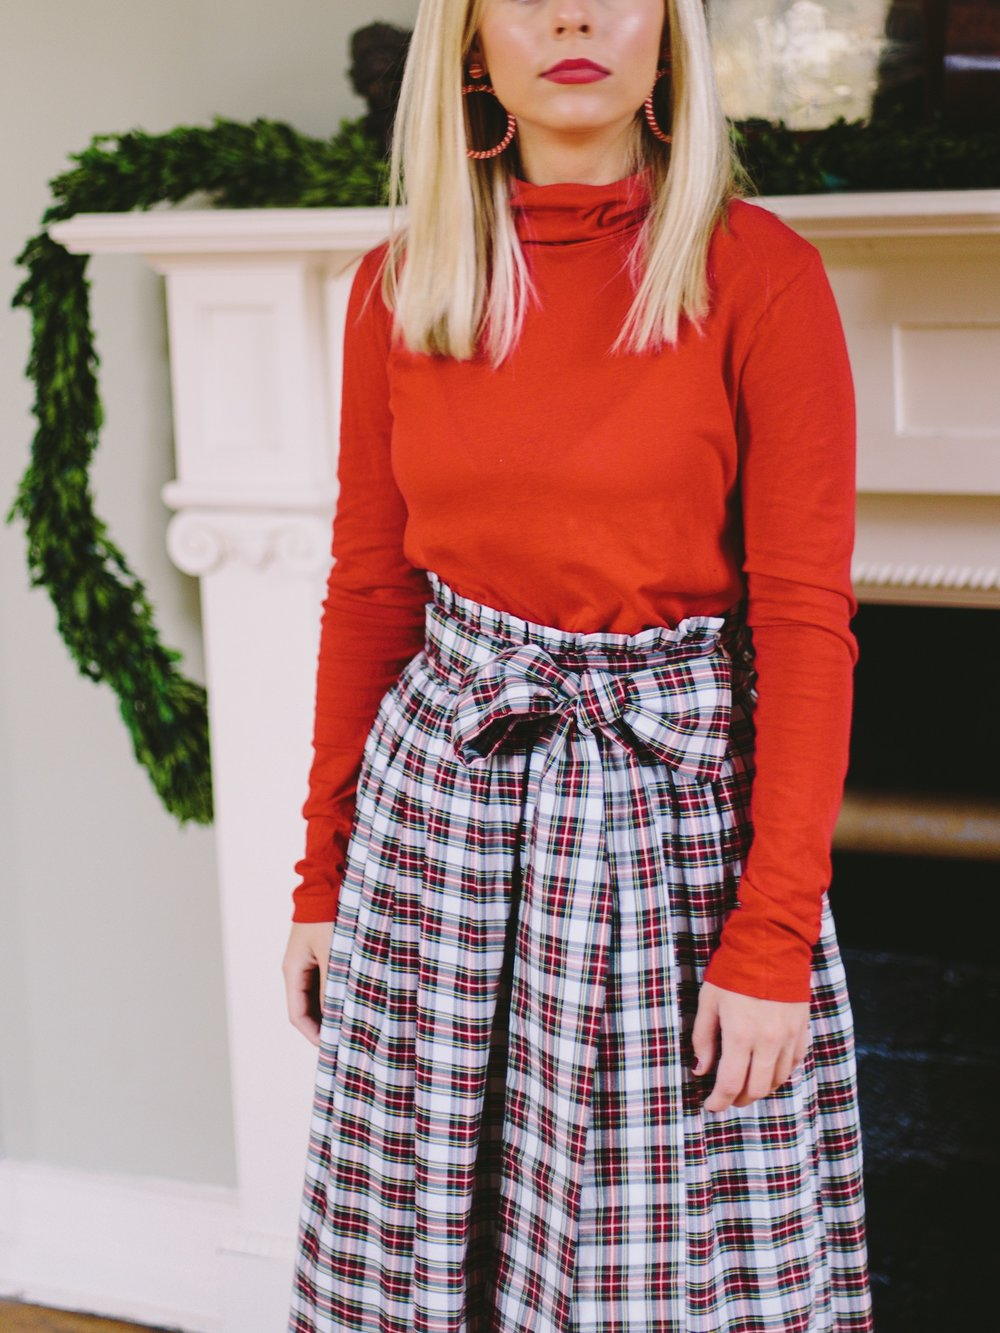 MAD FOR PLAID - THE MADELINE MAXI SKIRT IS THE PERFECT HOLIDAY PARTY PIECE.